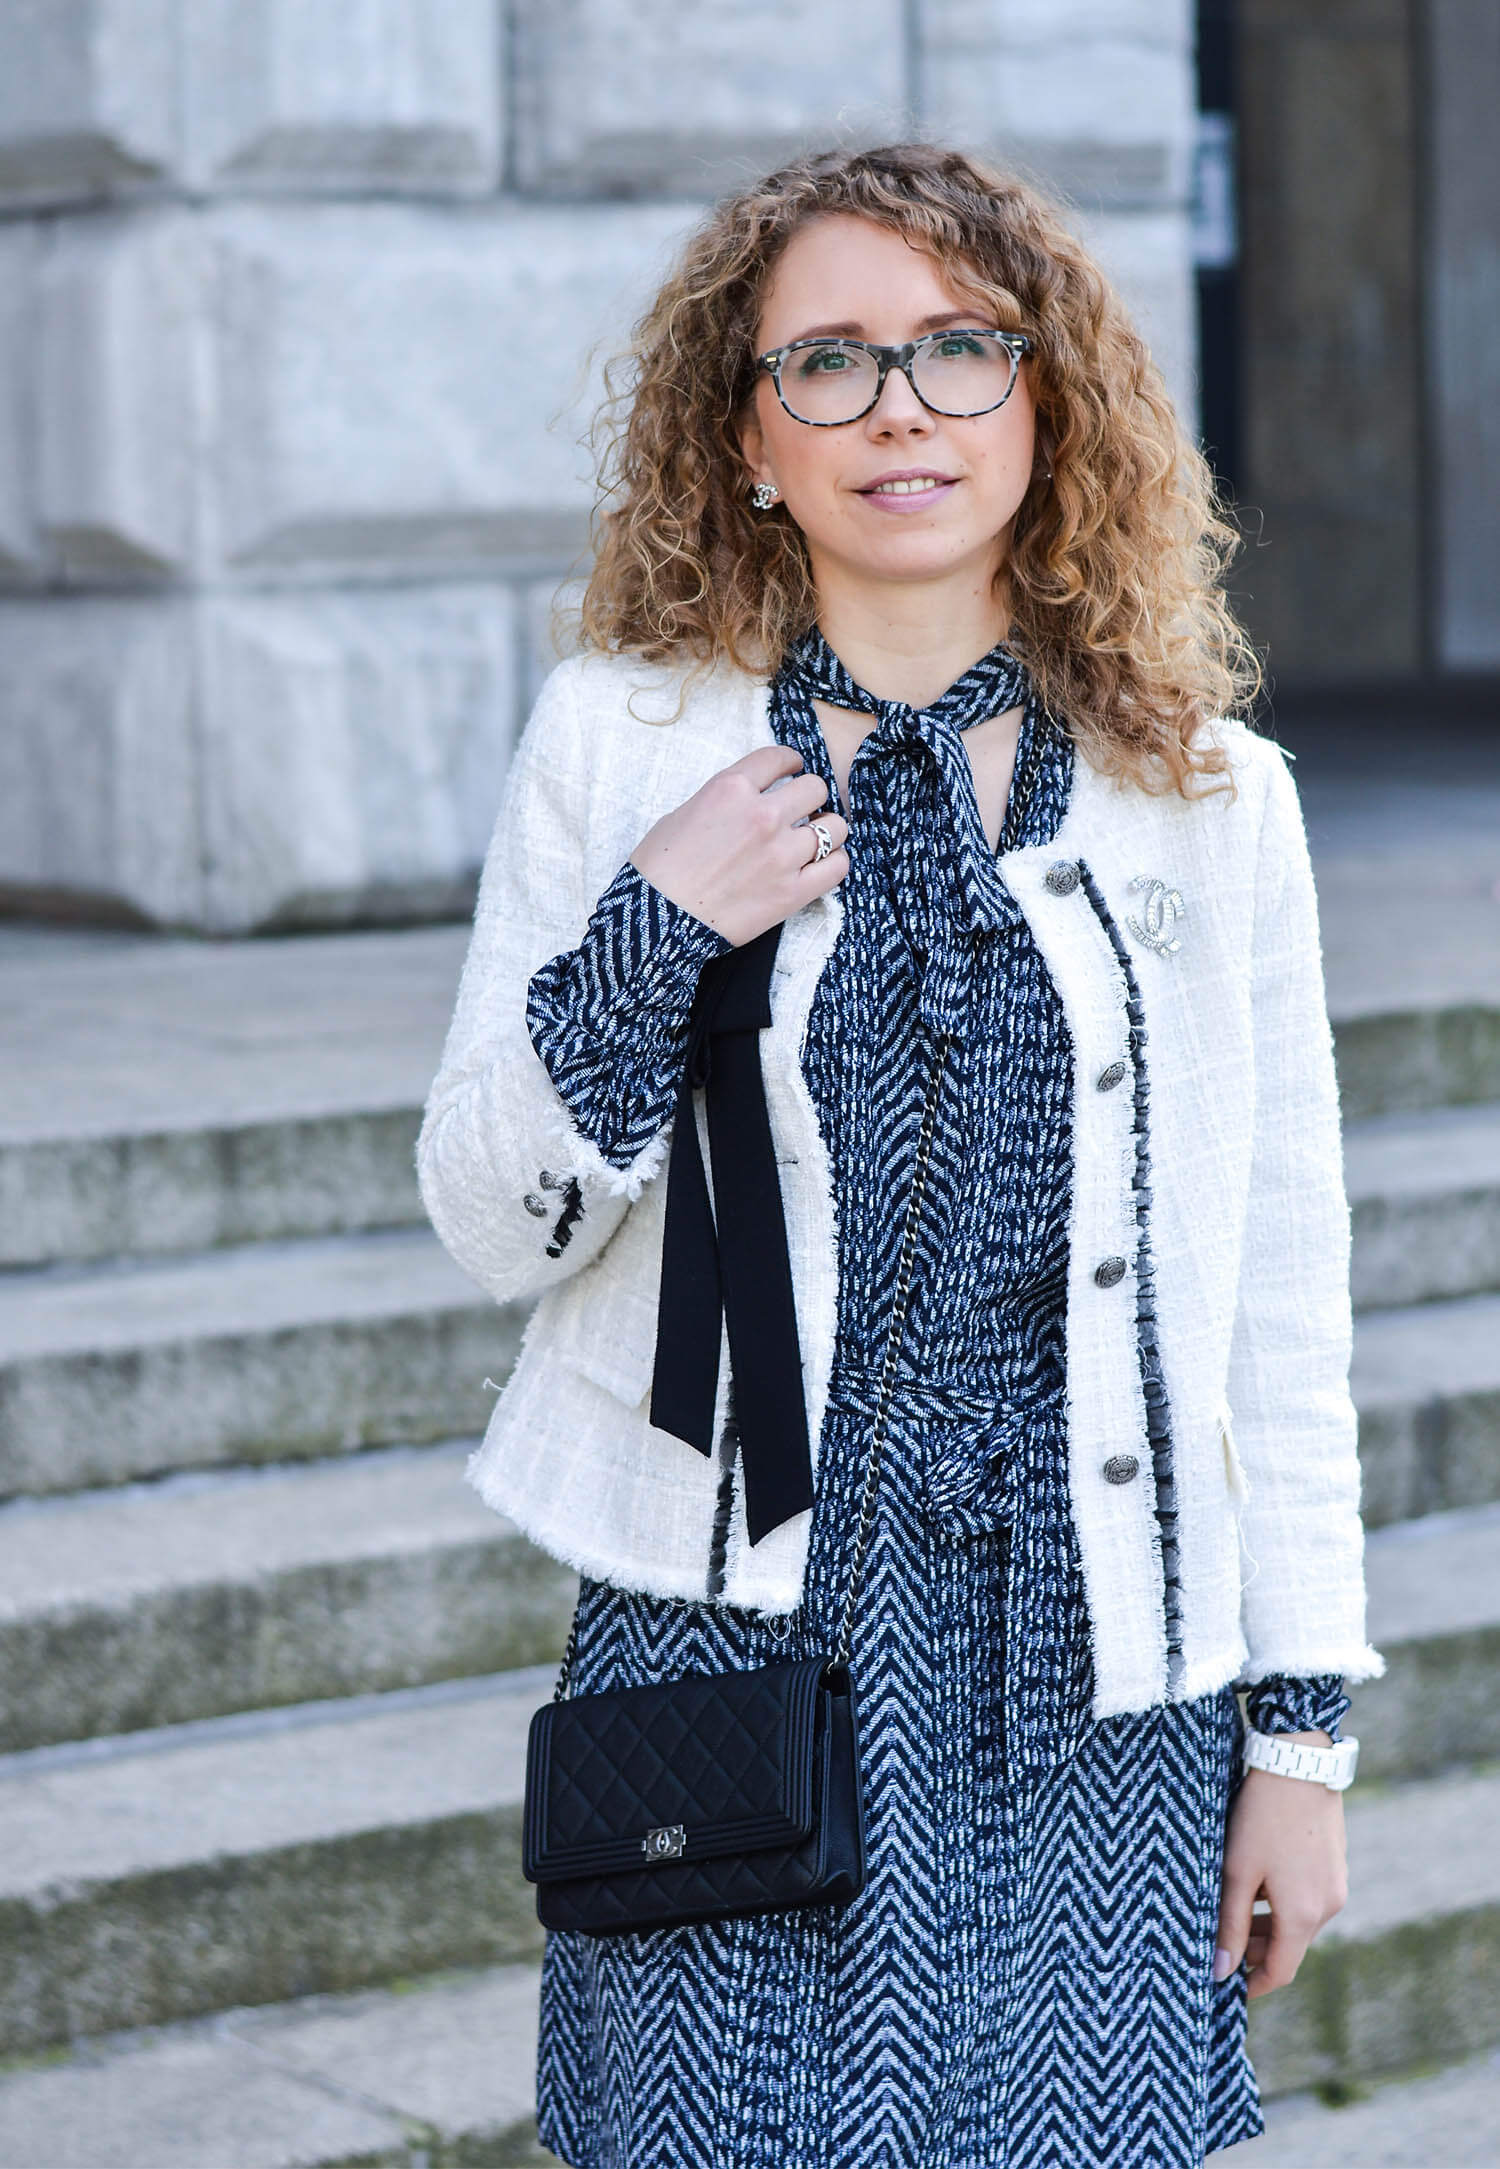 Kationette-fashionblog-nrw-Outfit-Spring-Chanel-Zara-streetstyle